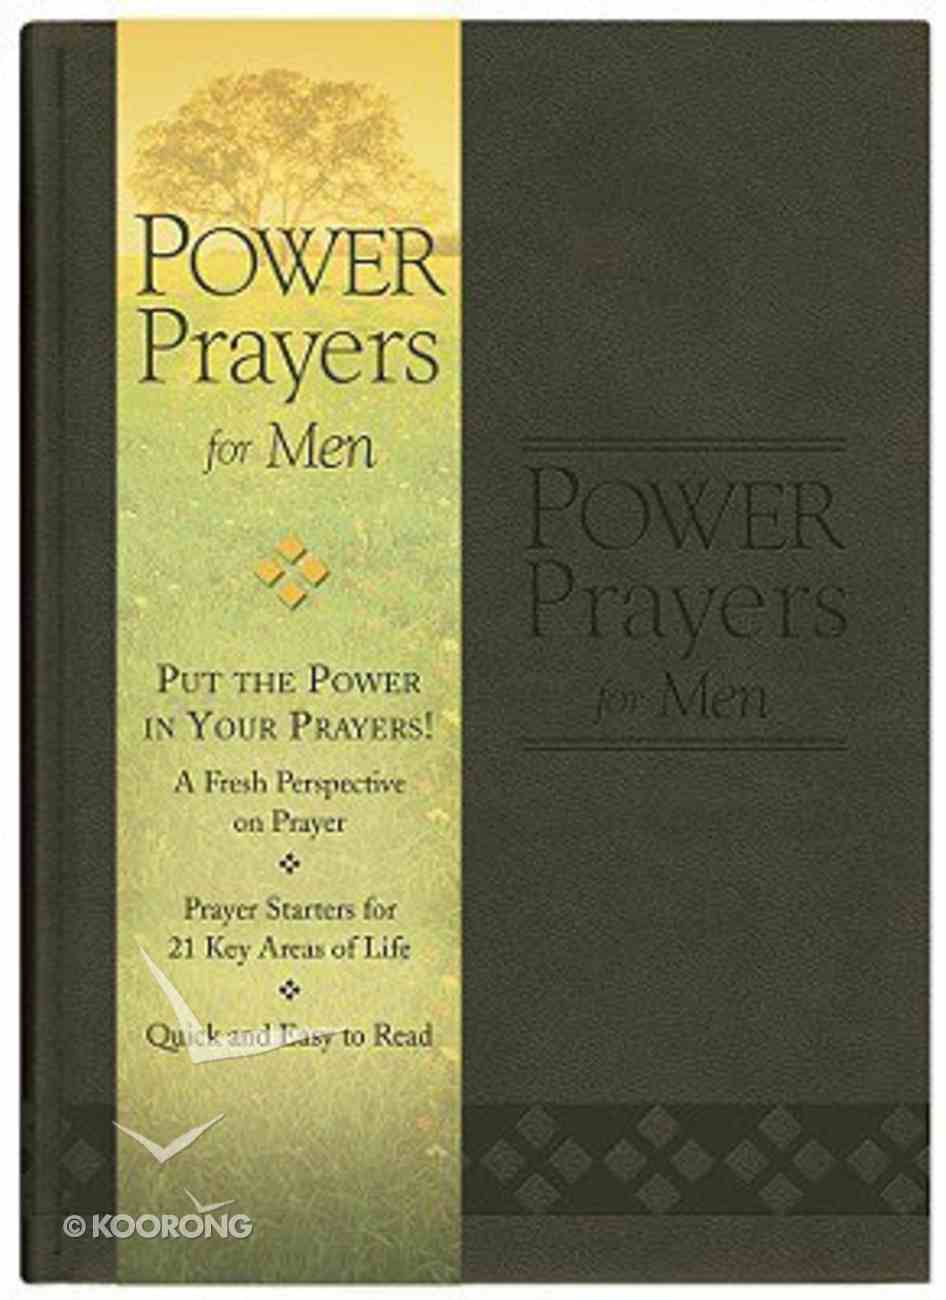 Power Prayers For Men (Gift Edition) Imitation Leather